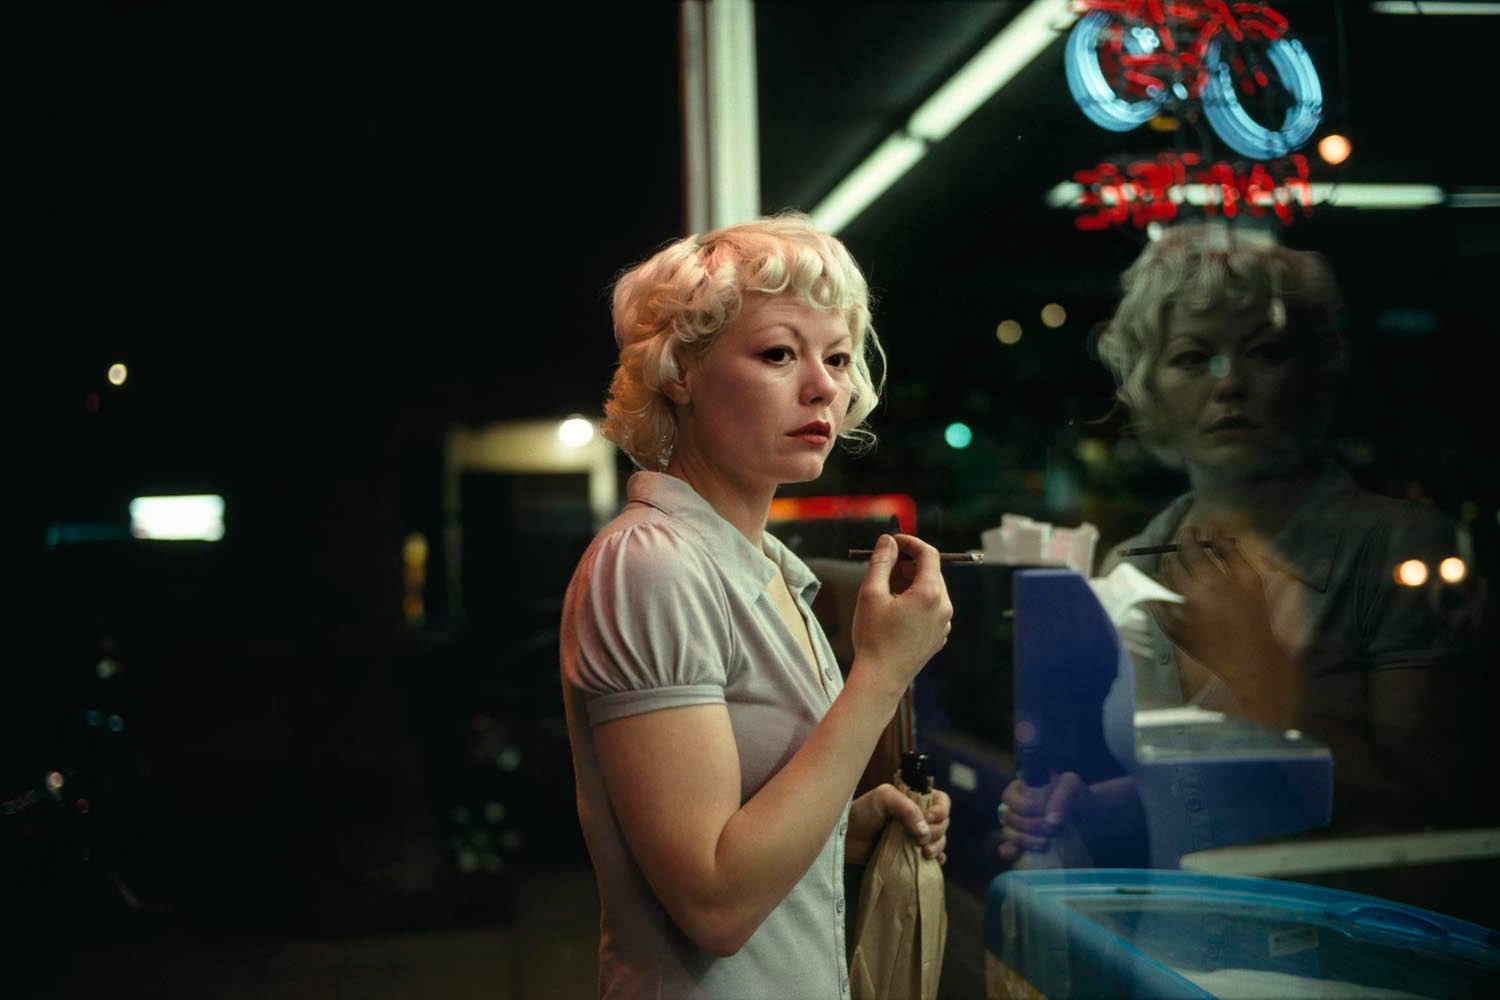 Malaïka #13, North Sunset Blvd, 2010. From the series On Hollywood.